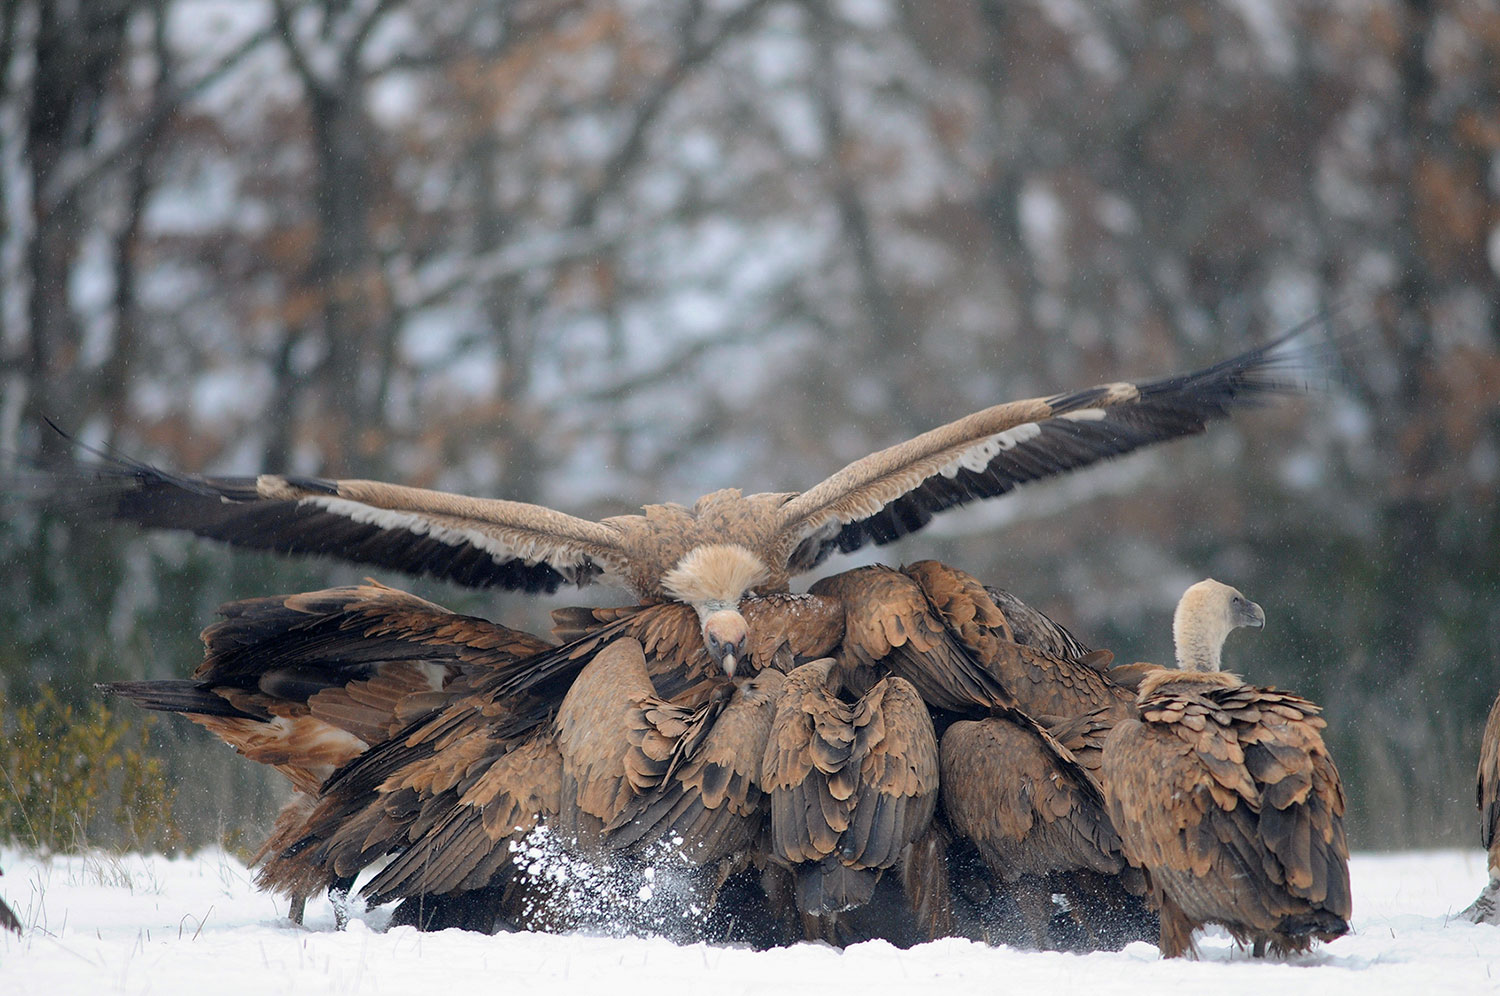 Griffon Vultures, by AMNC project   Mobile Pastoralism in the Mediterranean